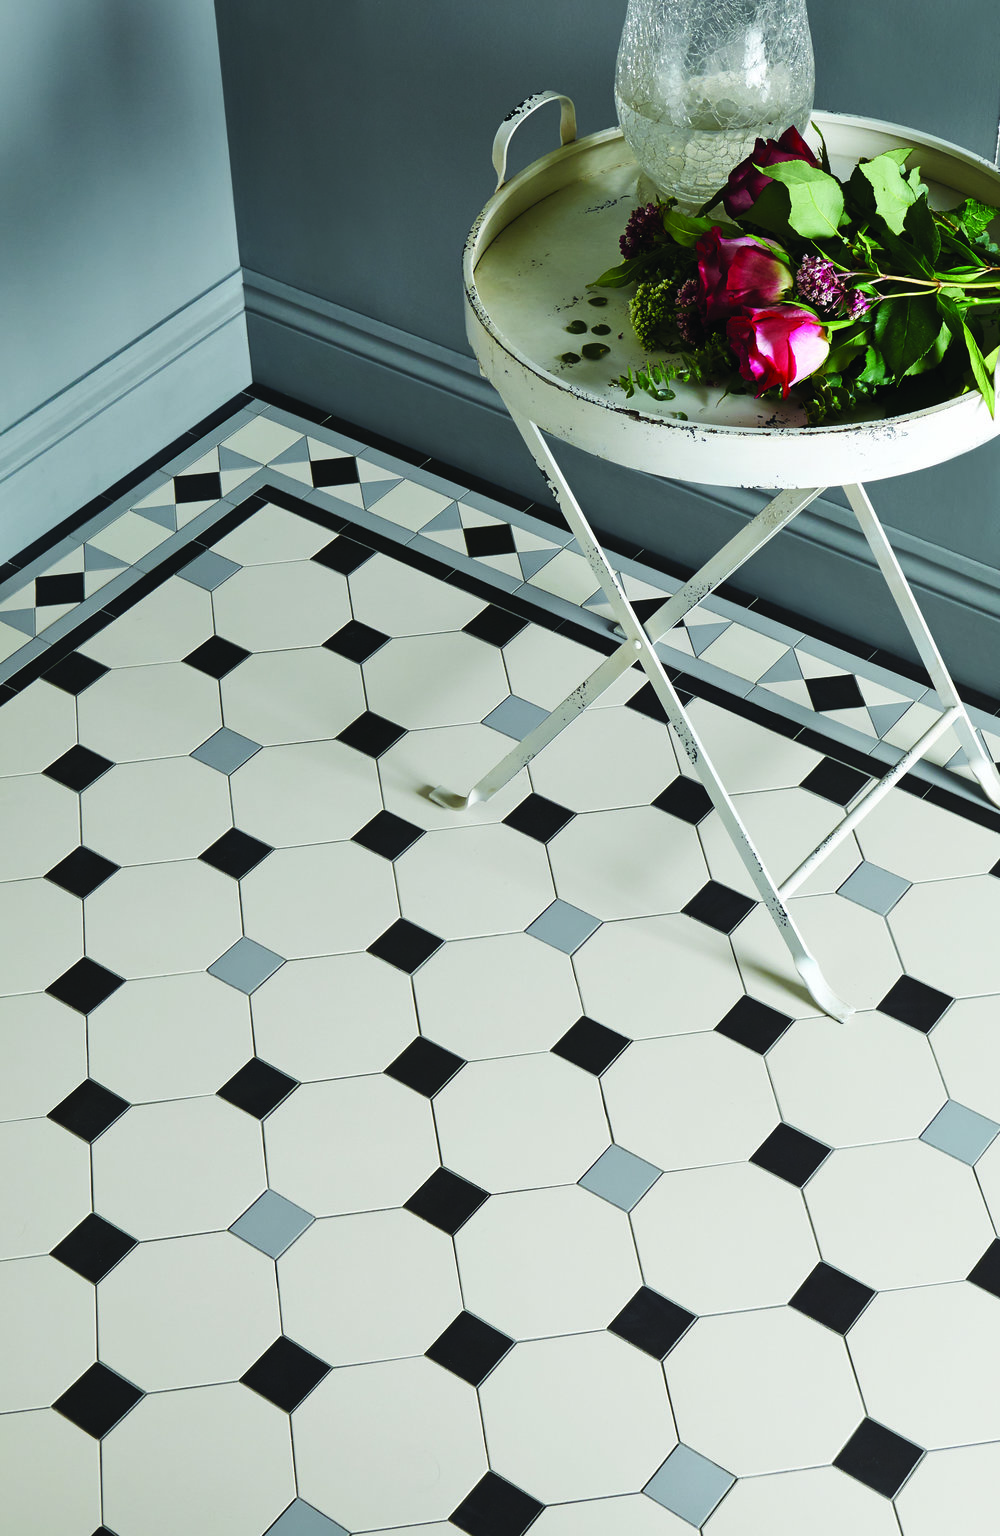 Original Style - VFT - Nottingham pattern with Conrad border in Dover White, Black and Grey  2.jpg